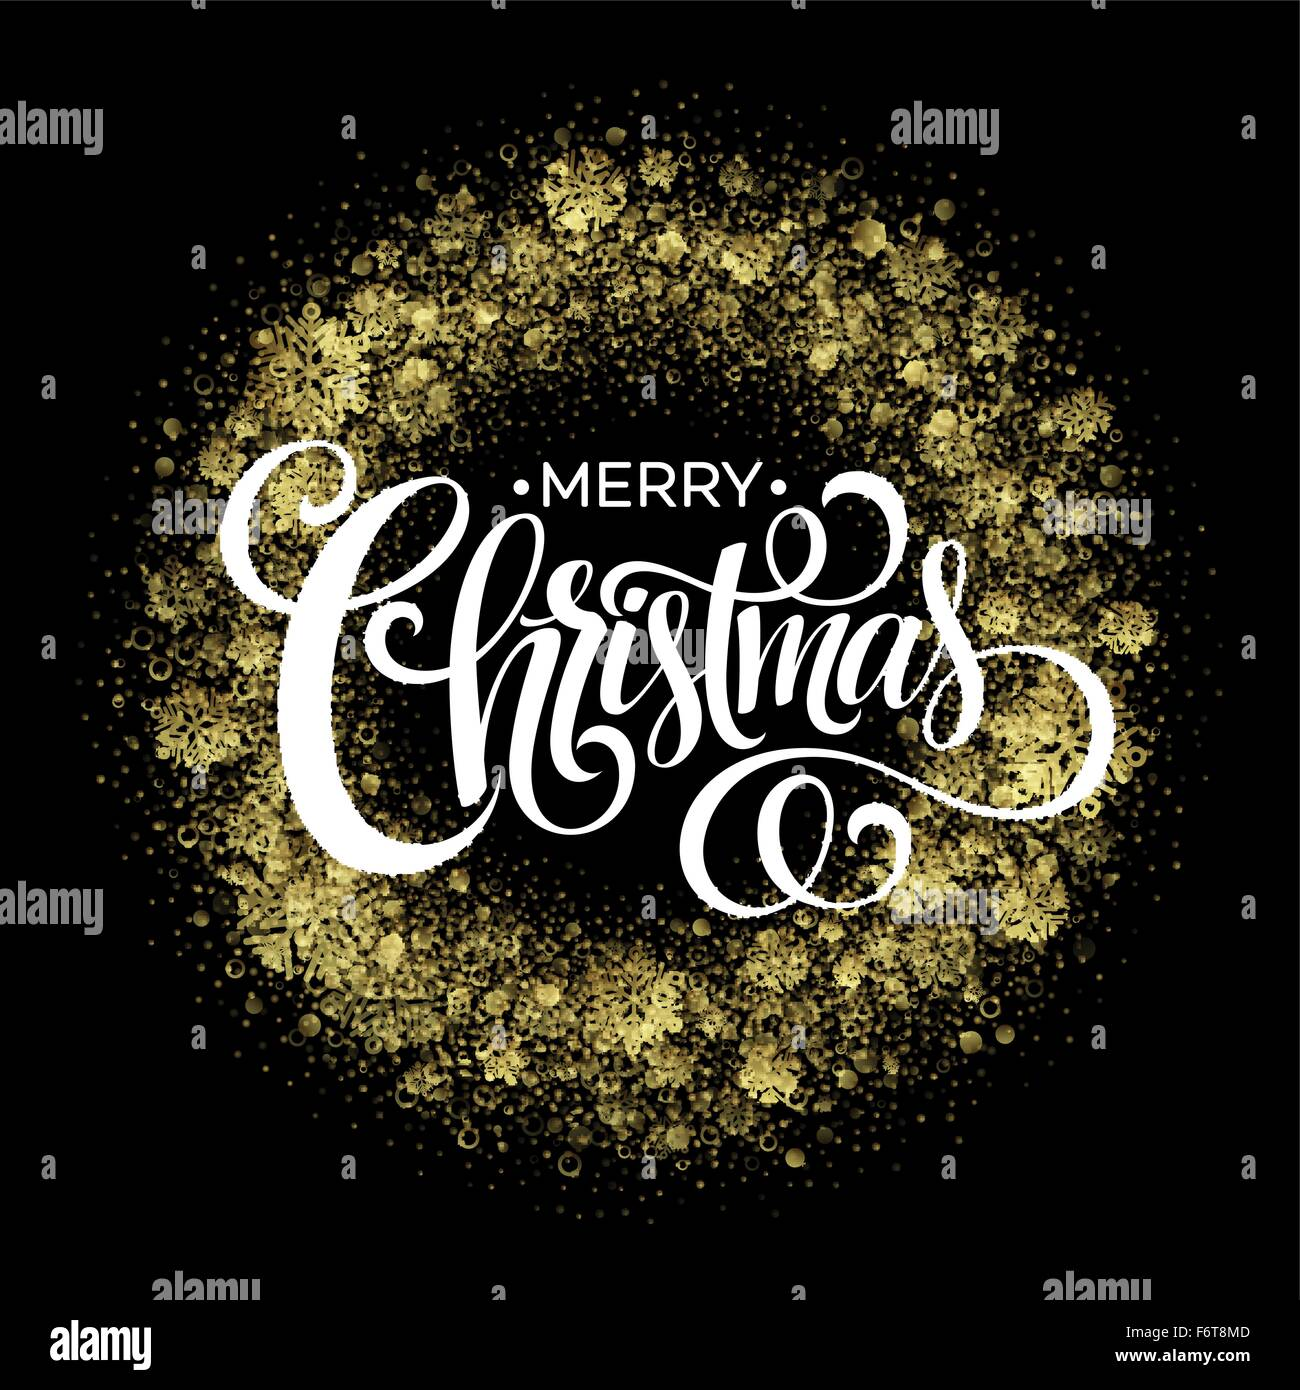 Christmas sparklers in shape of Christmas wreath on black background. Vector illustration - Stock Vector